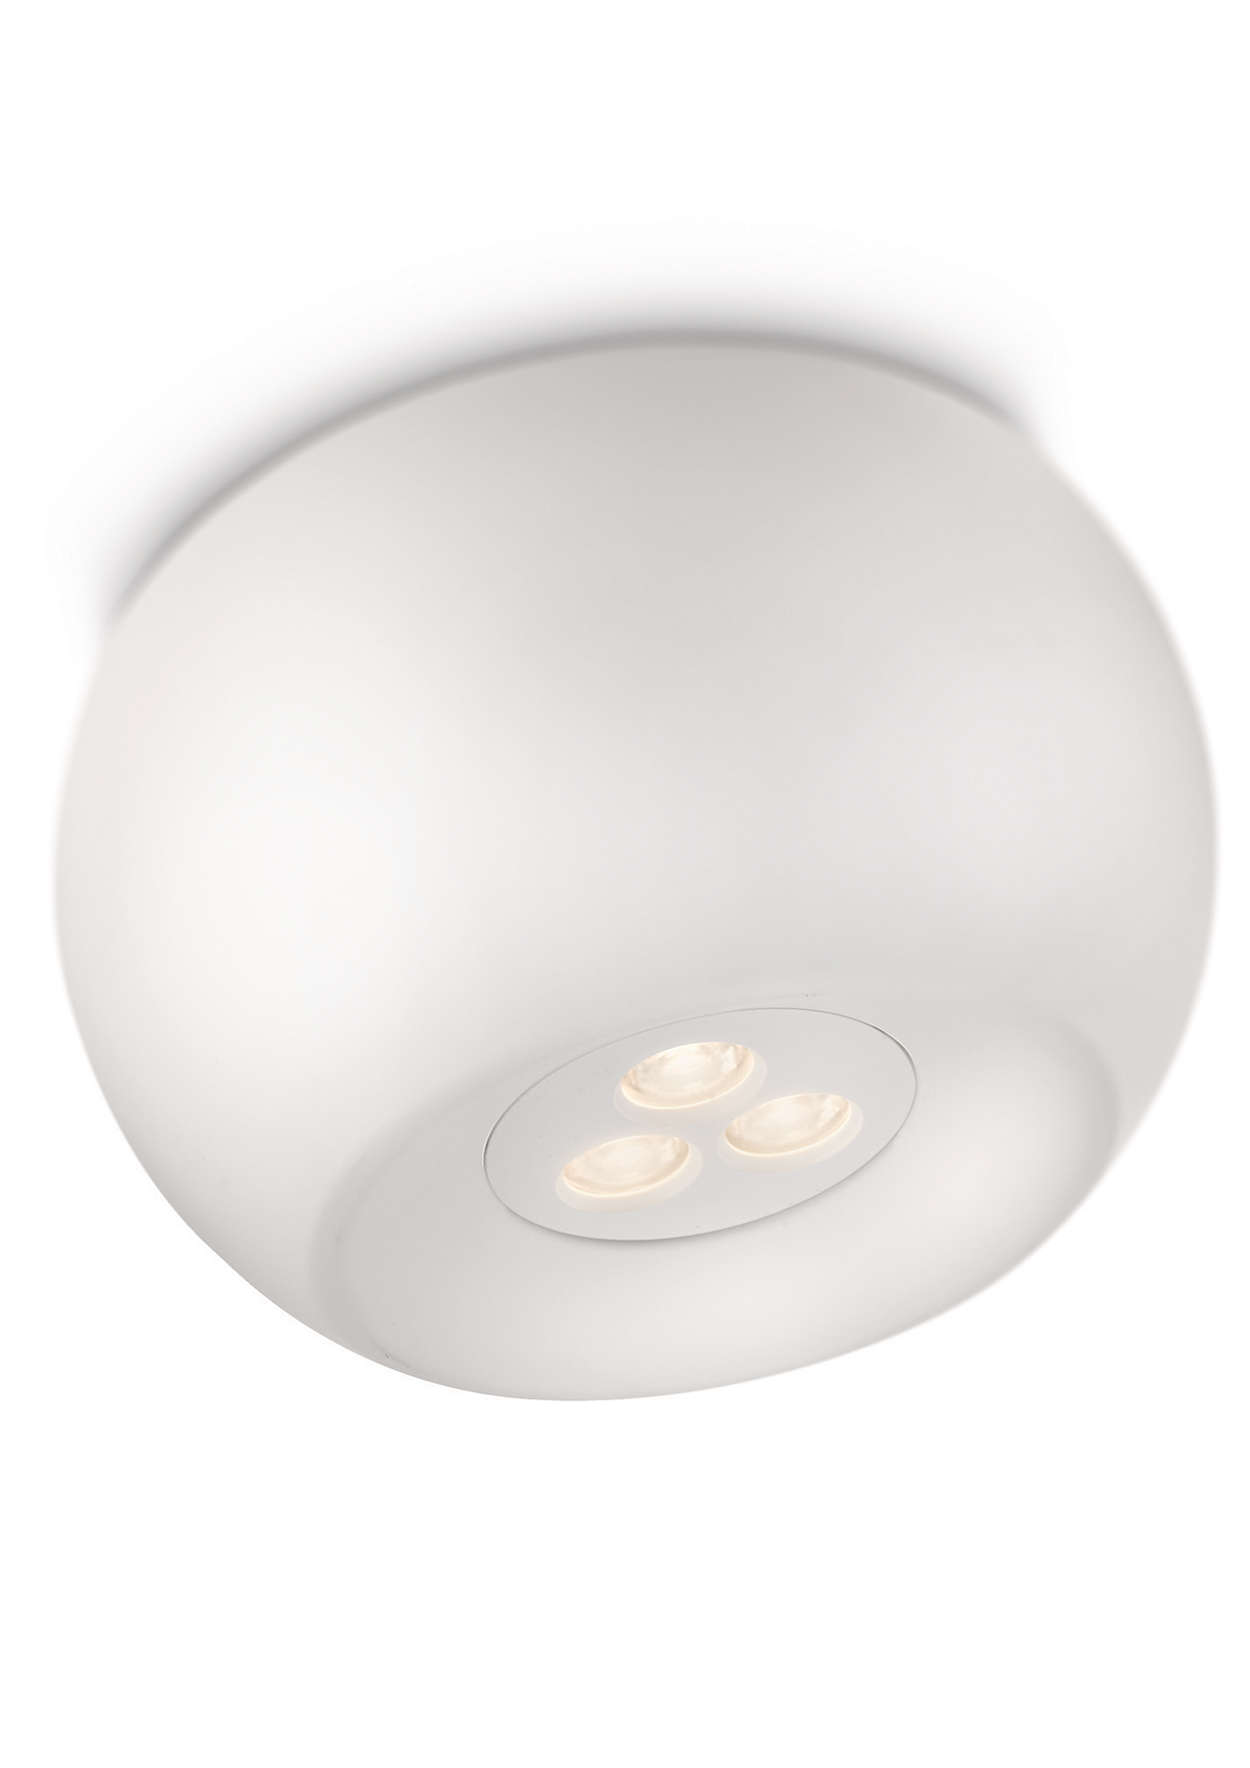 decor online home product furniture in singapore firefly ceiling lighting pendant concrete light